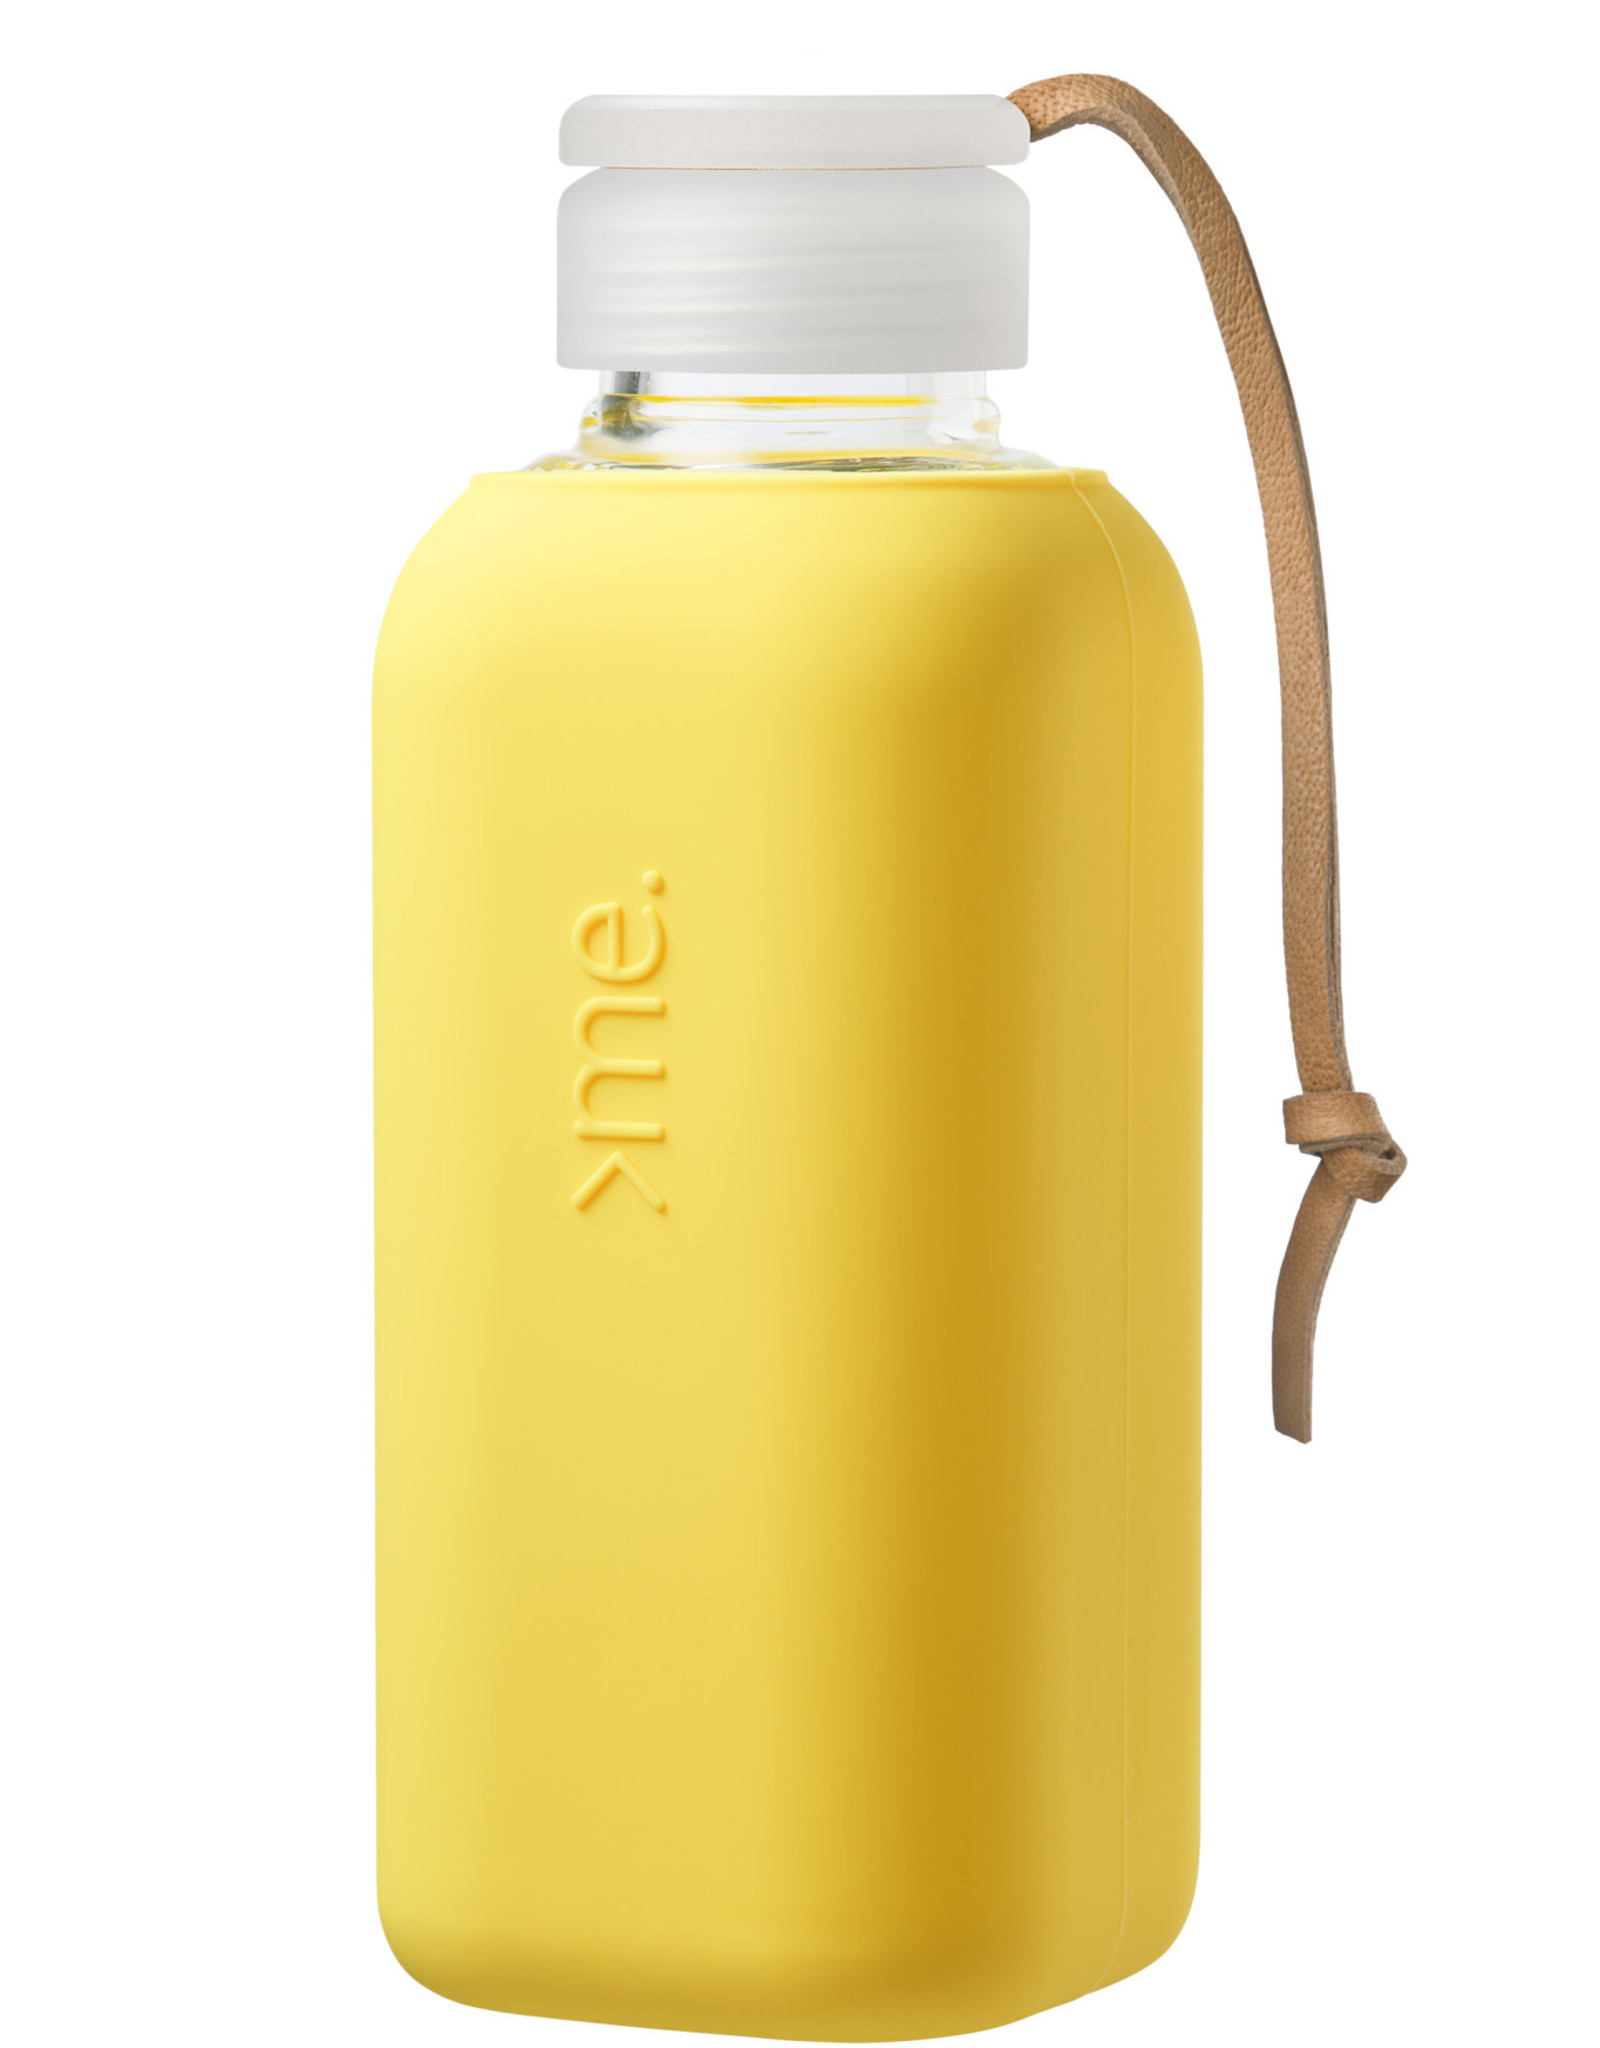 SQUIREME SQUIREME Y1 Bottle 600ml YELLOW